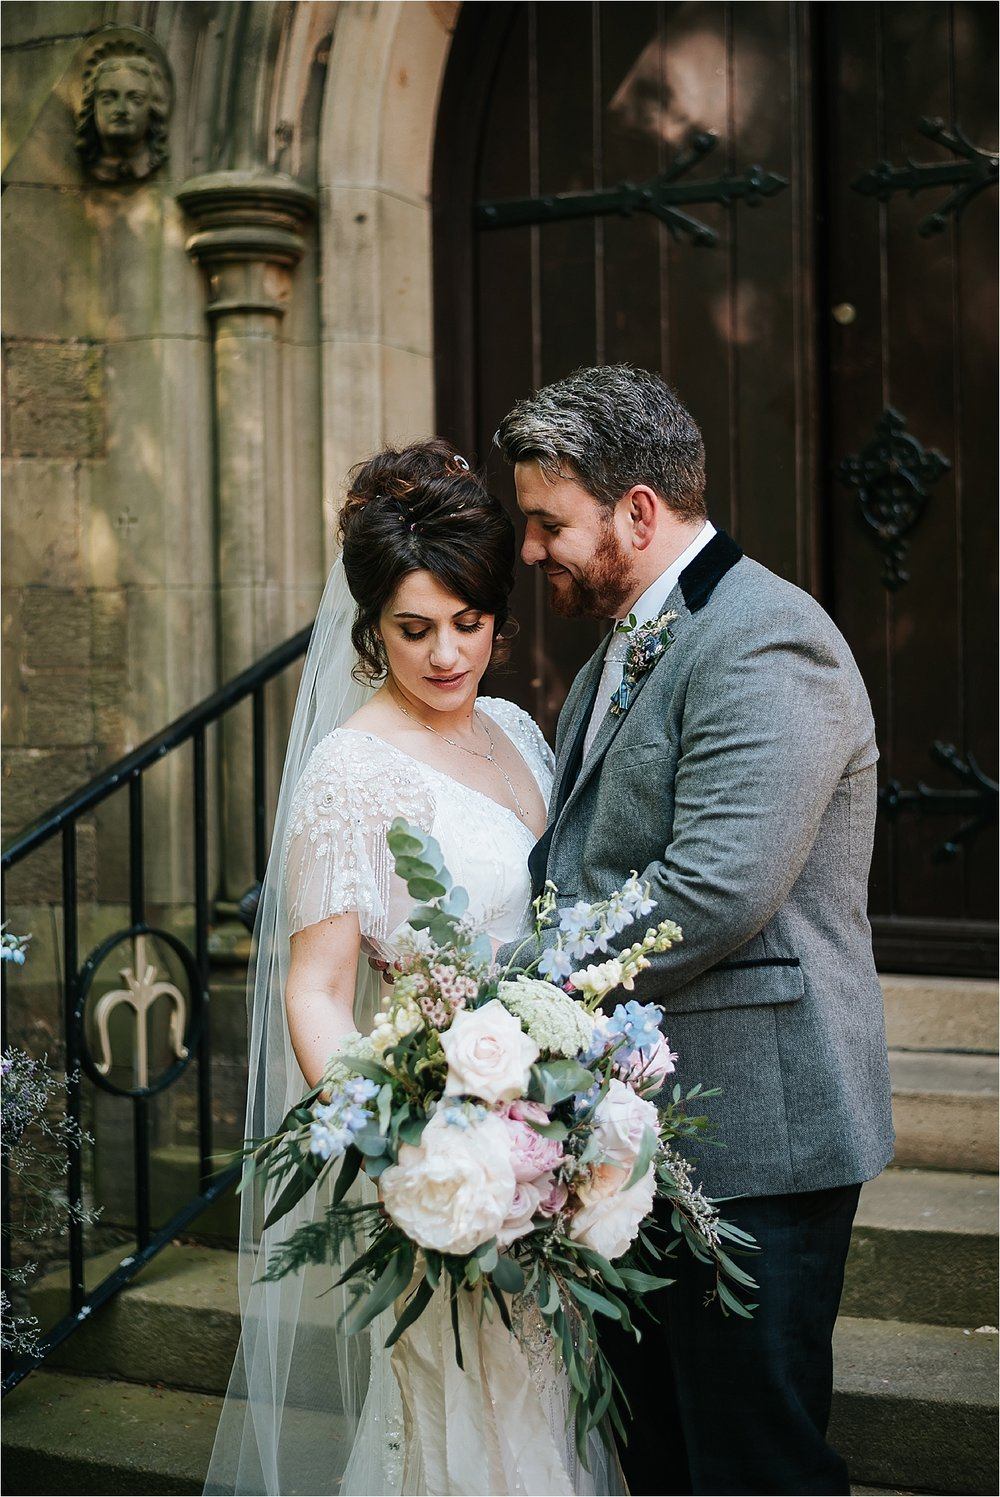 boho+wedding+photographer+wyresdale+park+lancashire_0112.jpg